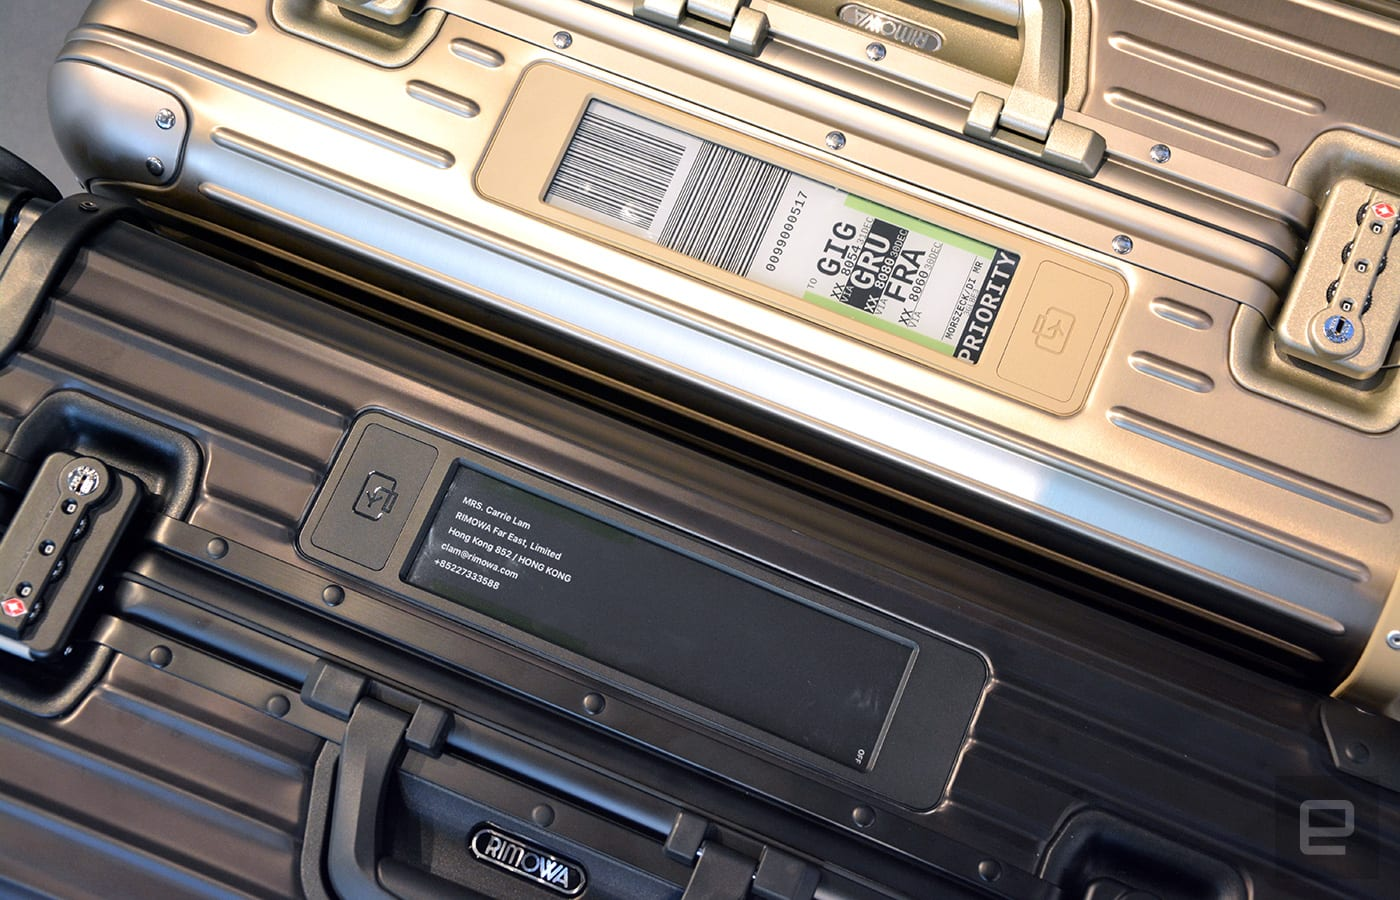 ad1f9ce0b6e4 Rimowa's electronic luggage tag is the future of traveling